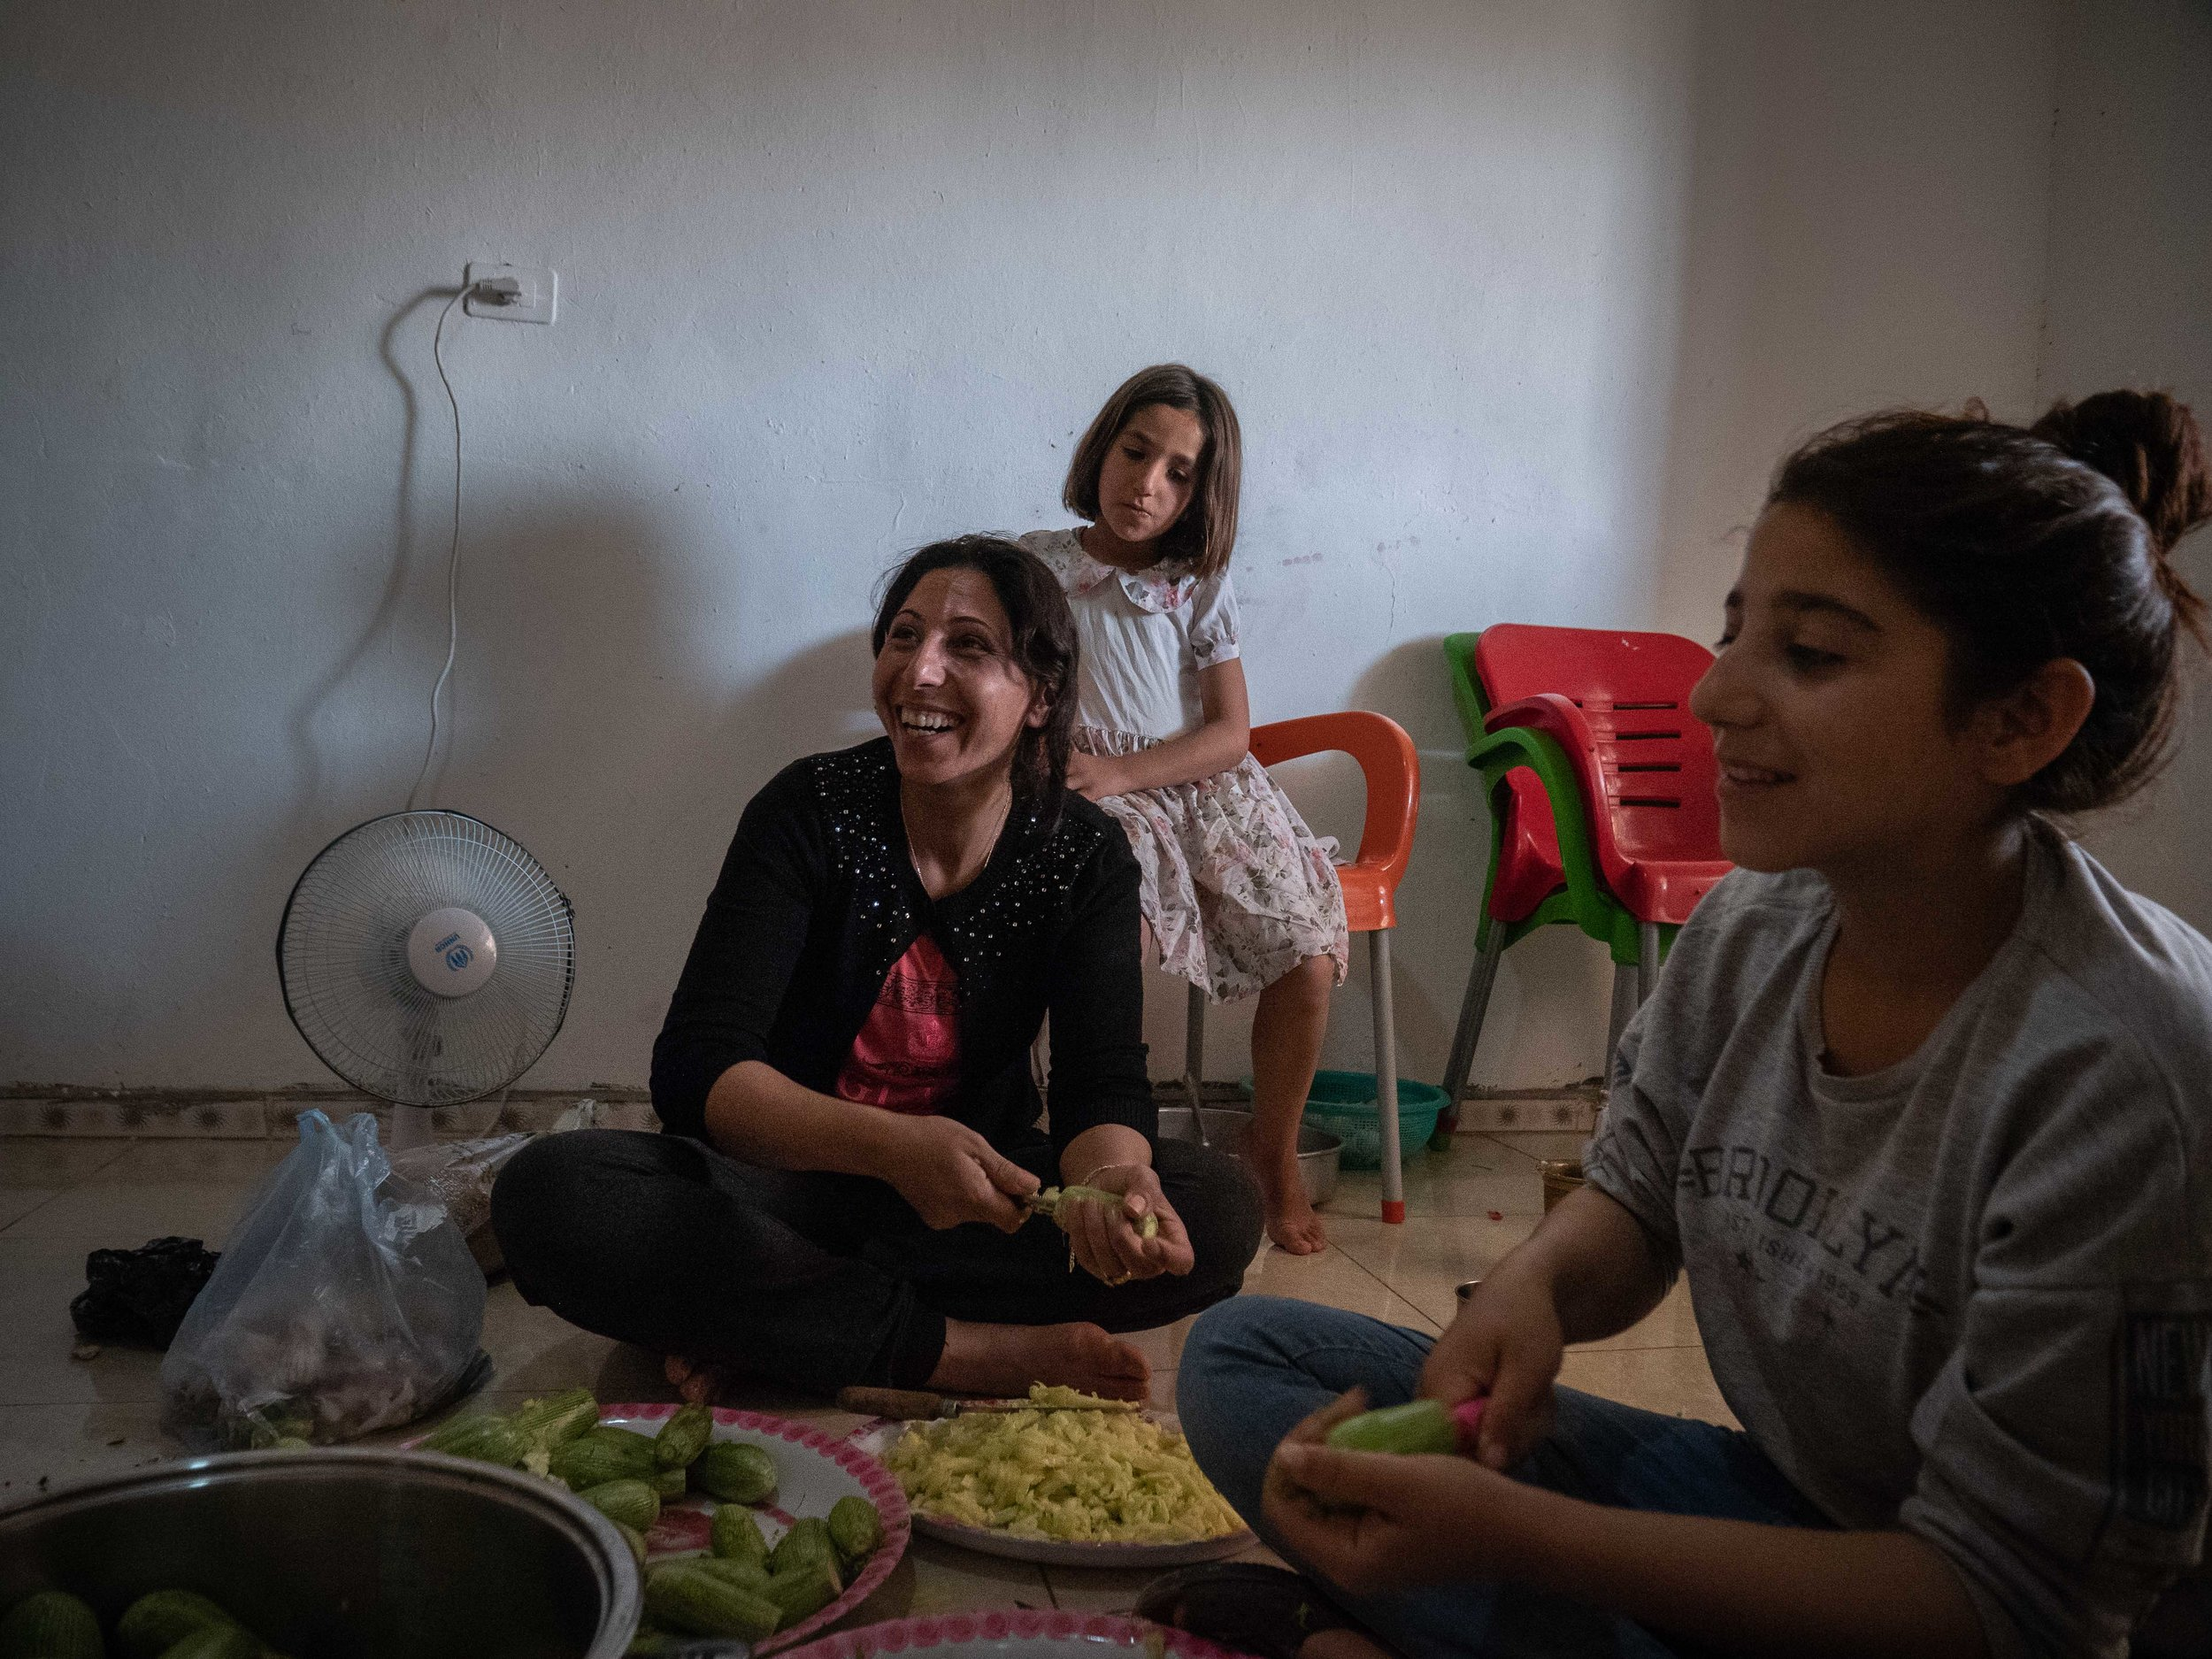 31/05/19, Jinwar, Syria - Fatma, the widow of a YPG martyr, prepares traditional food in her home in the village of Jinwar.